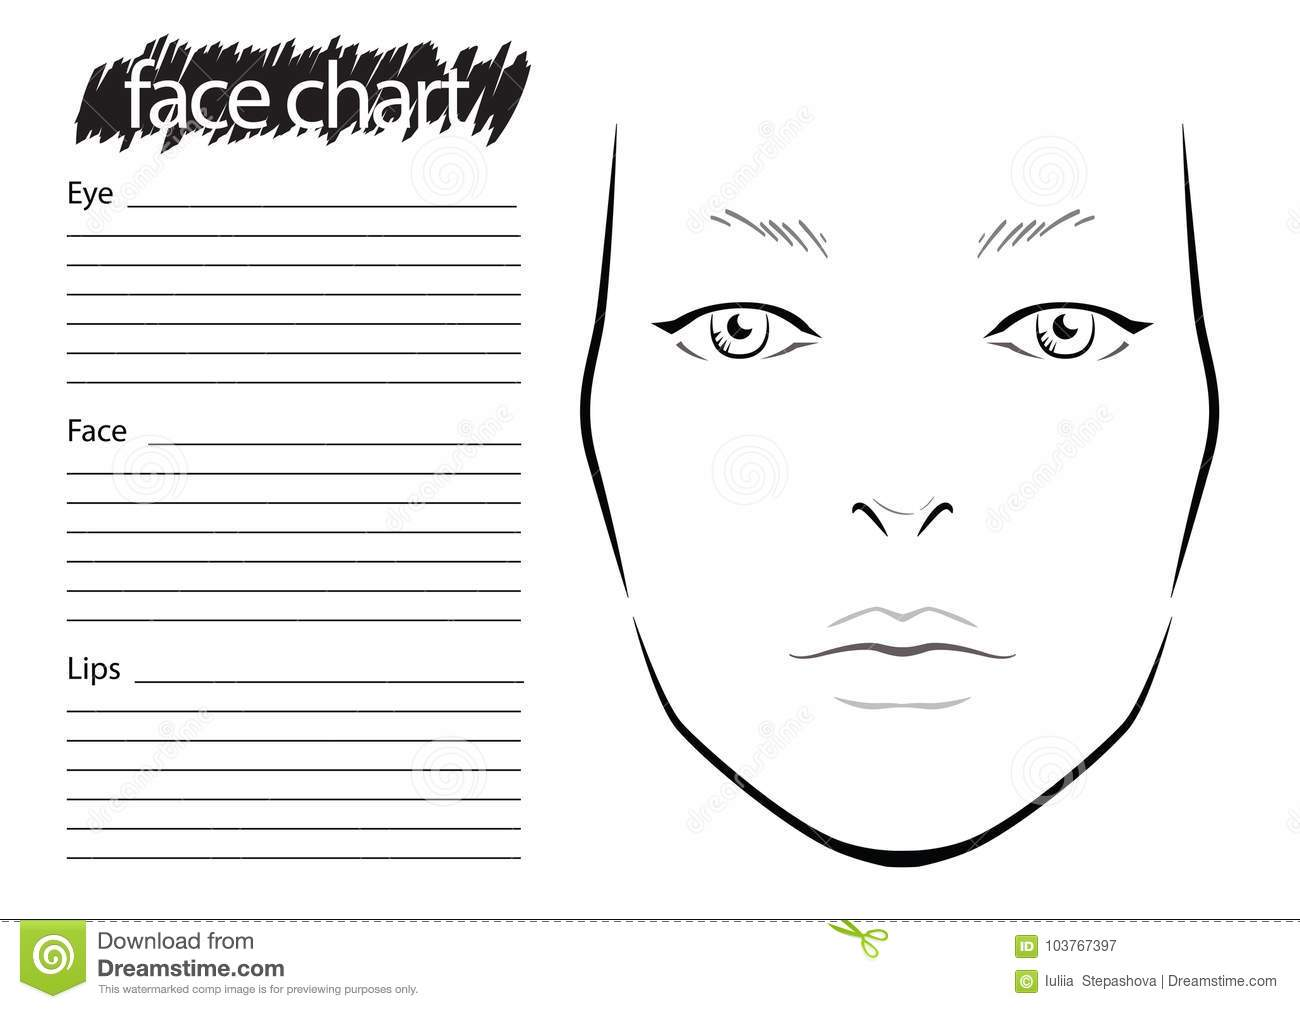 Face chart makeup artist blank template stock illustration download face chart makeup artist blank template stock illustration illustration of chart maxwellsz